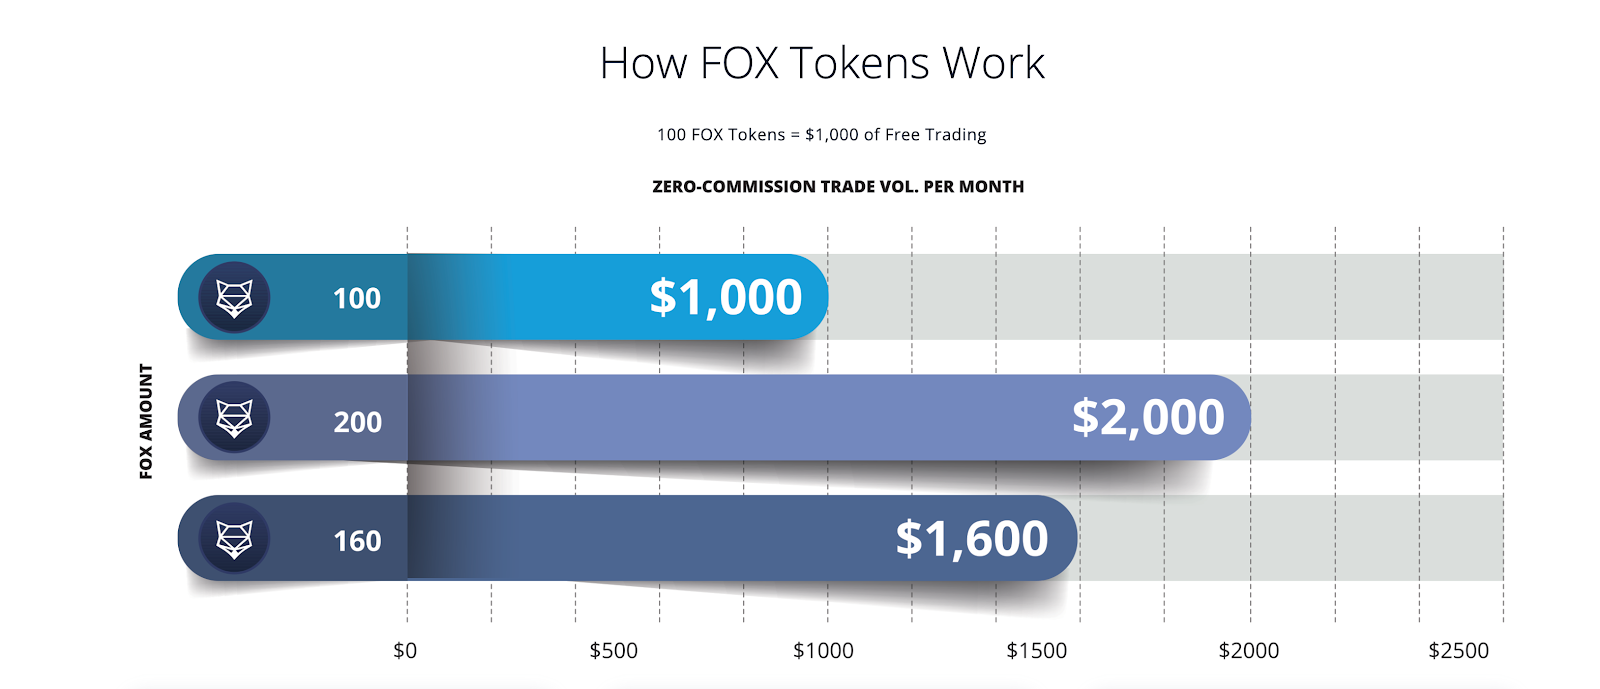 How ShapeShift's FOX Tokens work. 100 FOX Tokens equals $1,000 in free trading volume on ShapeShift.com. Get 100 FOX free.